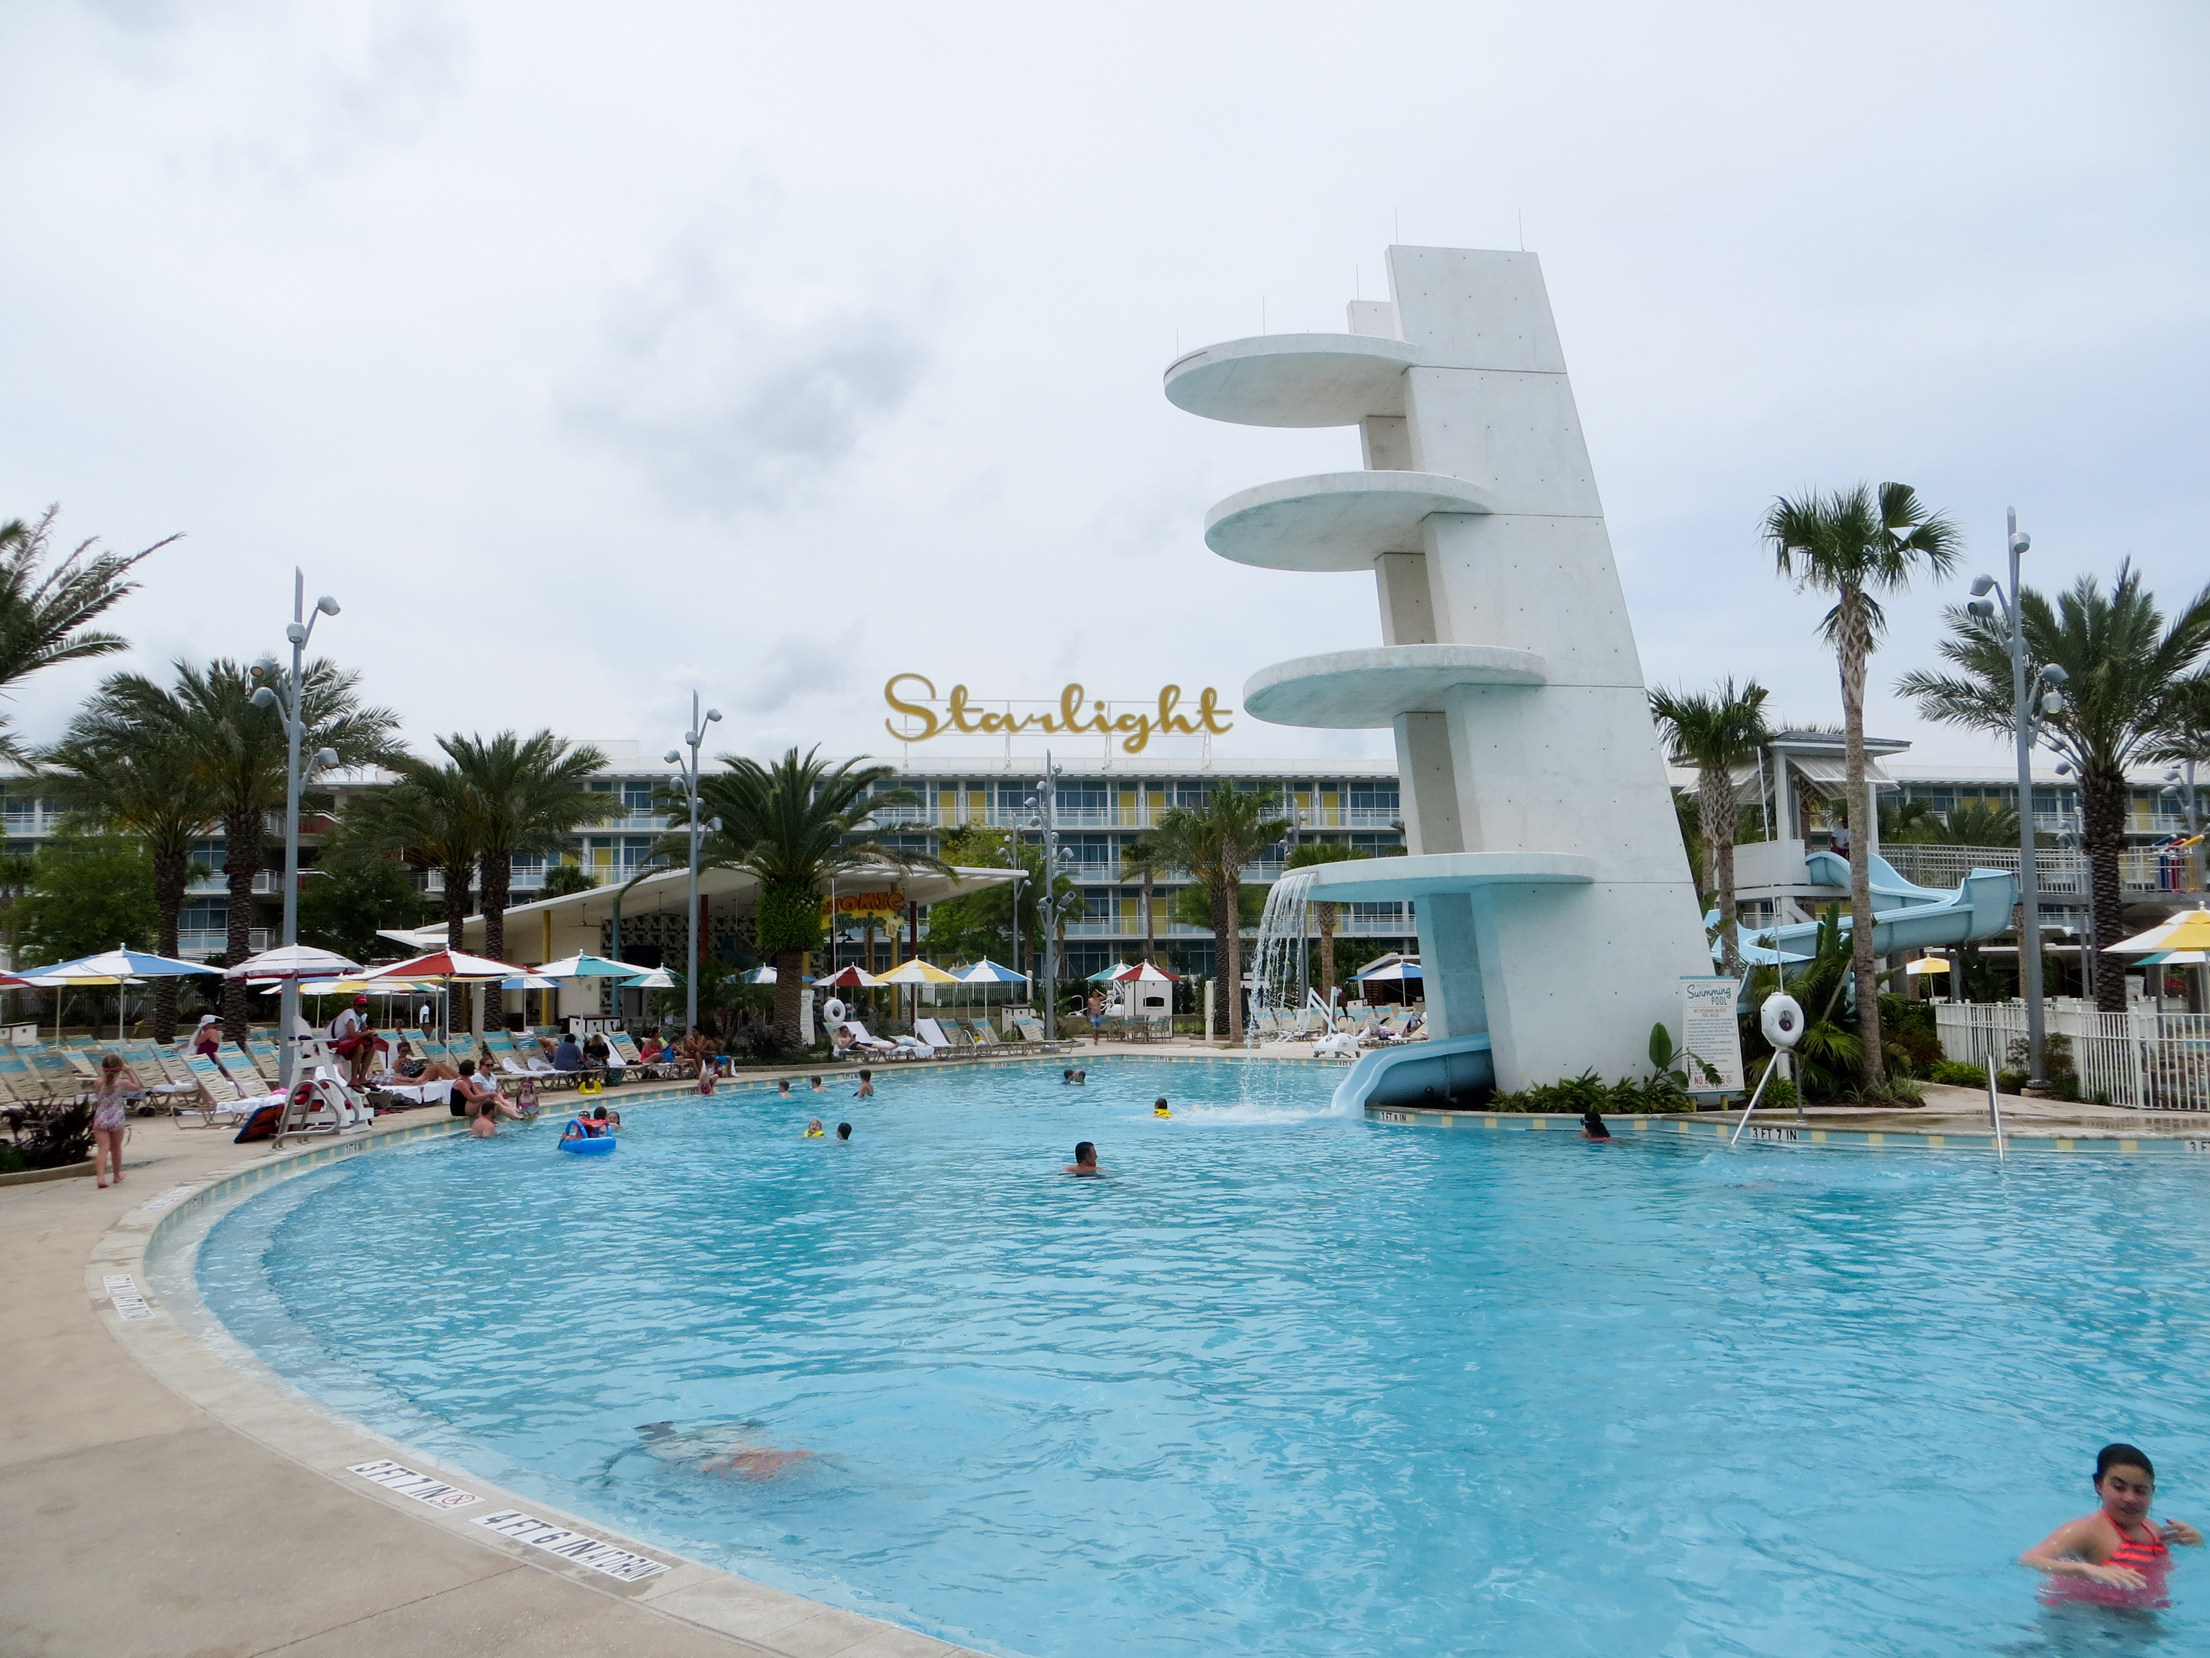 Cabana Bay Takes Visitors Back To 1960s In Style